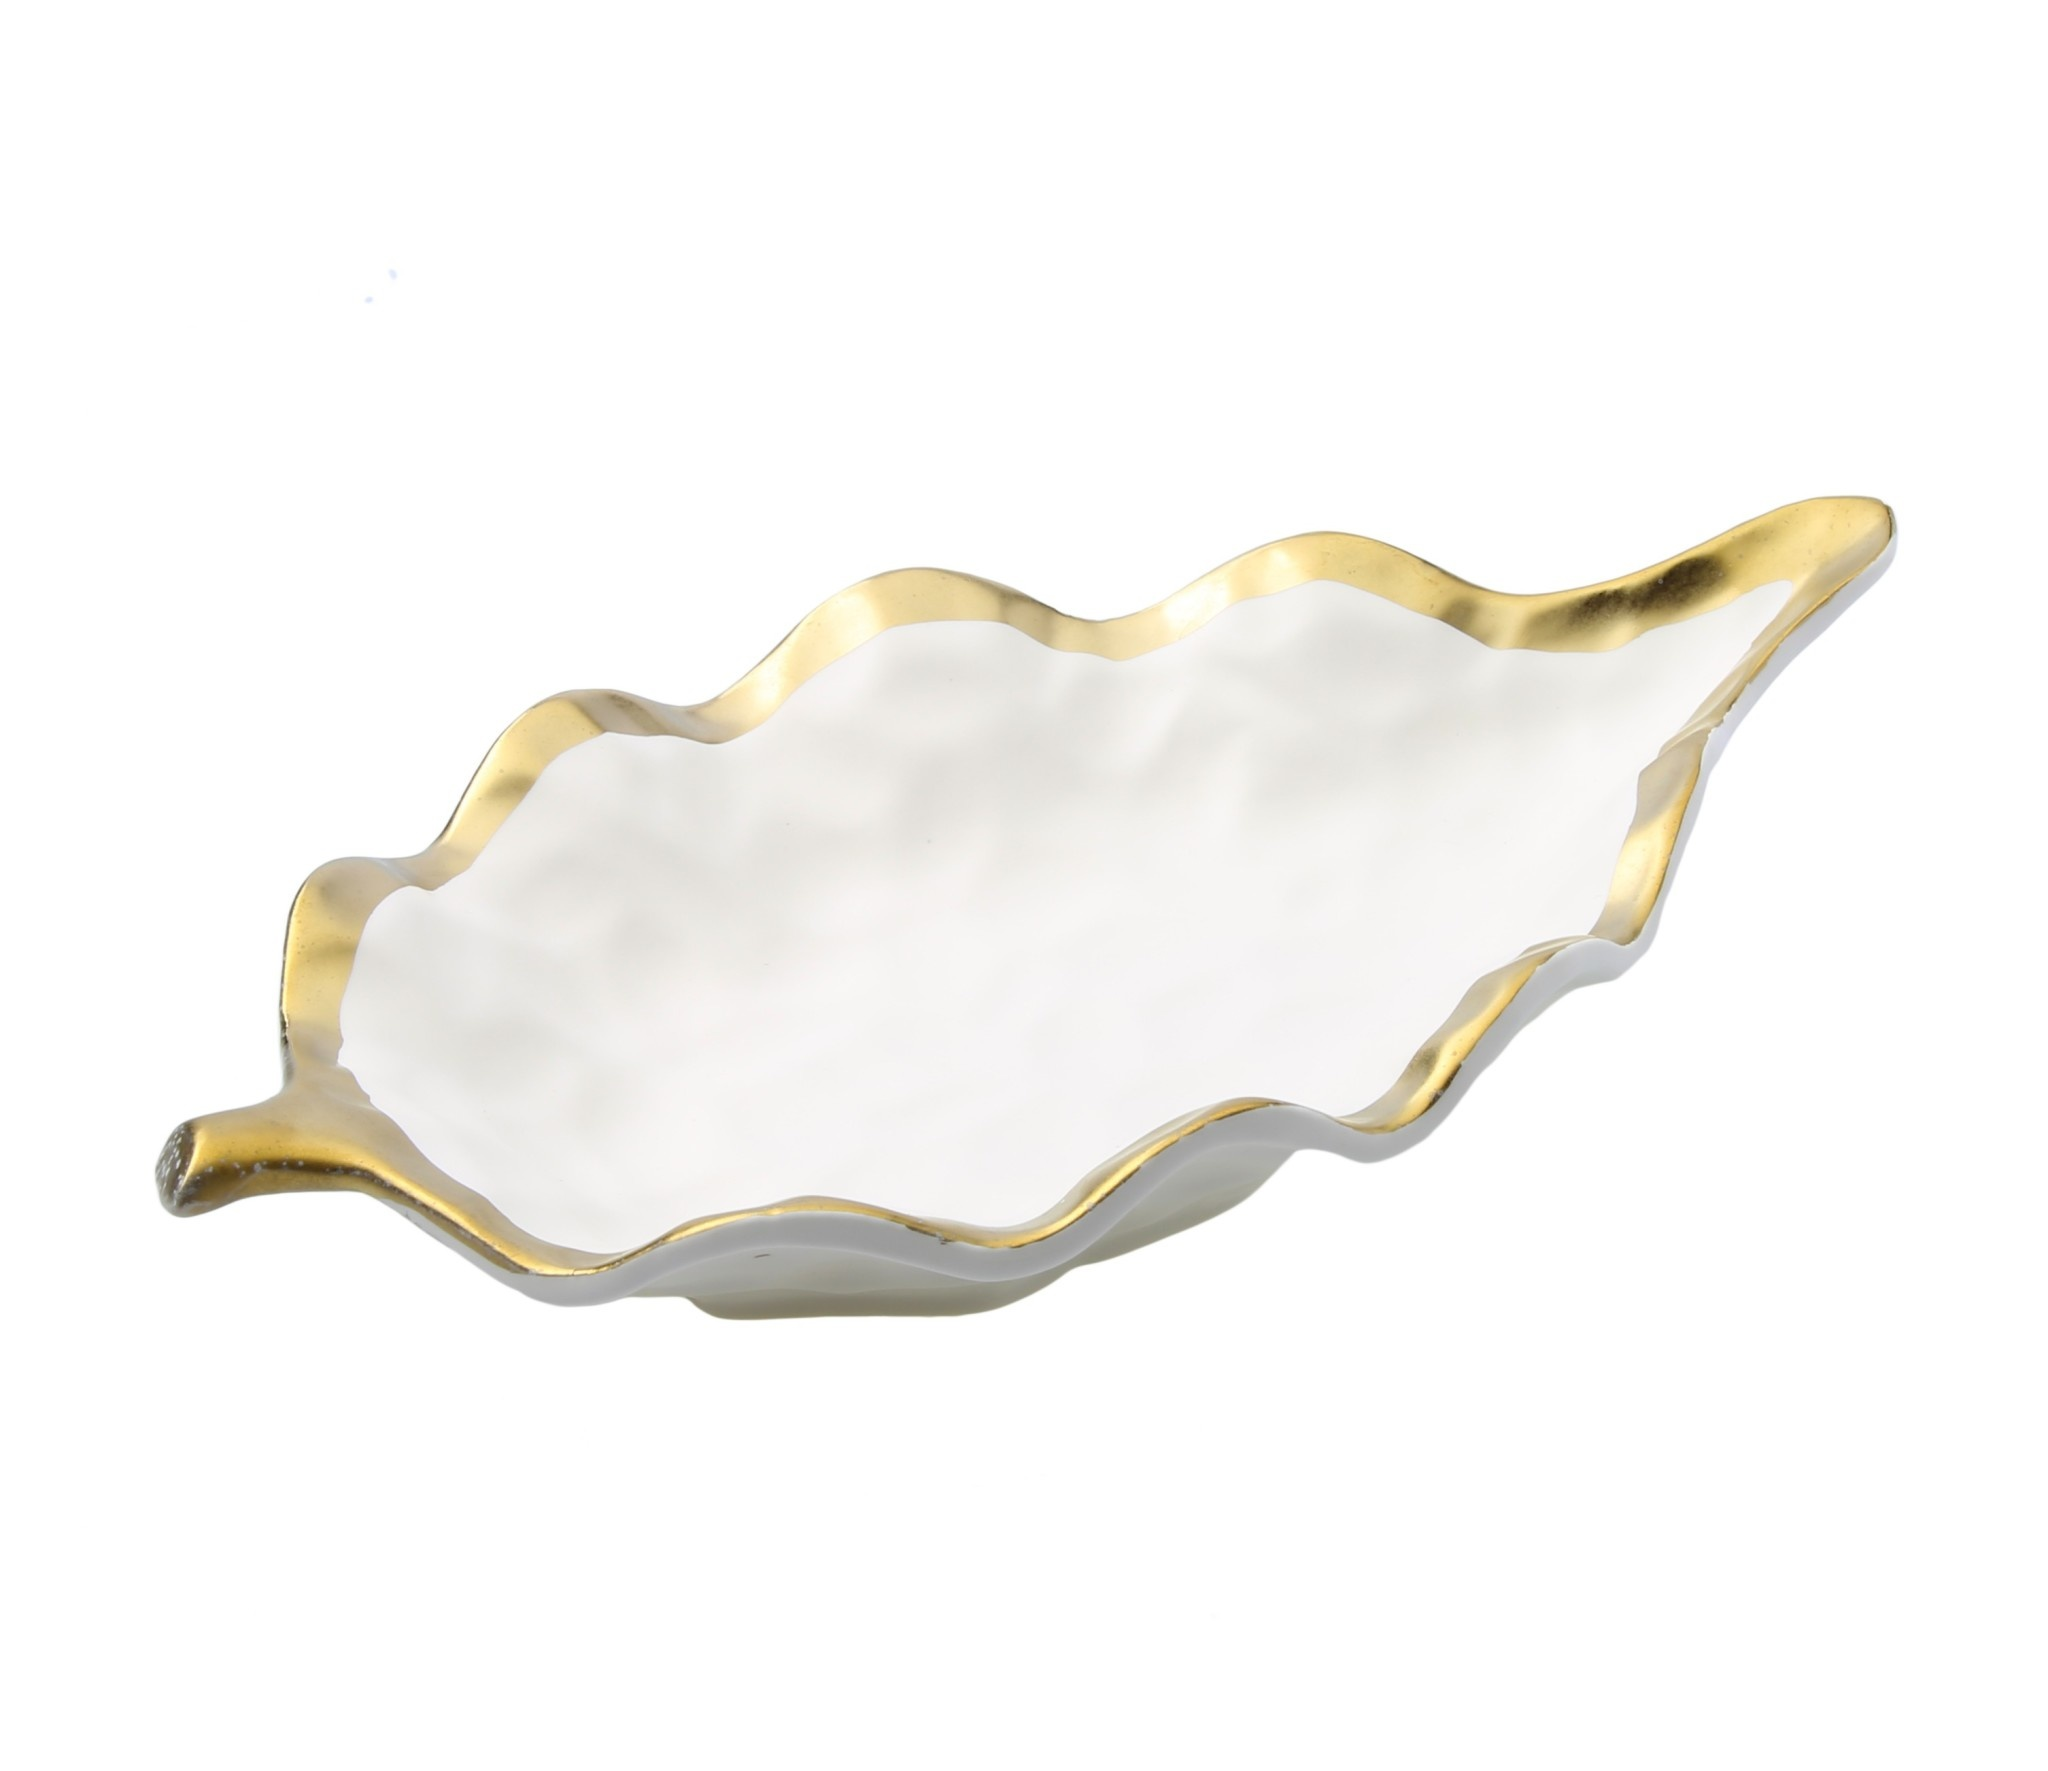 Small White Leaf Dish Bowl with Gold Rim